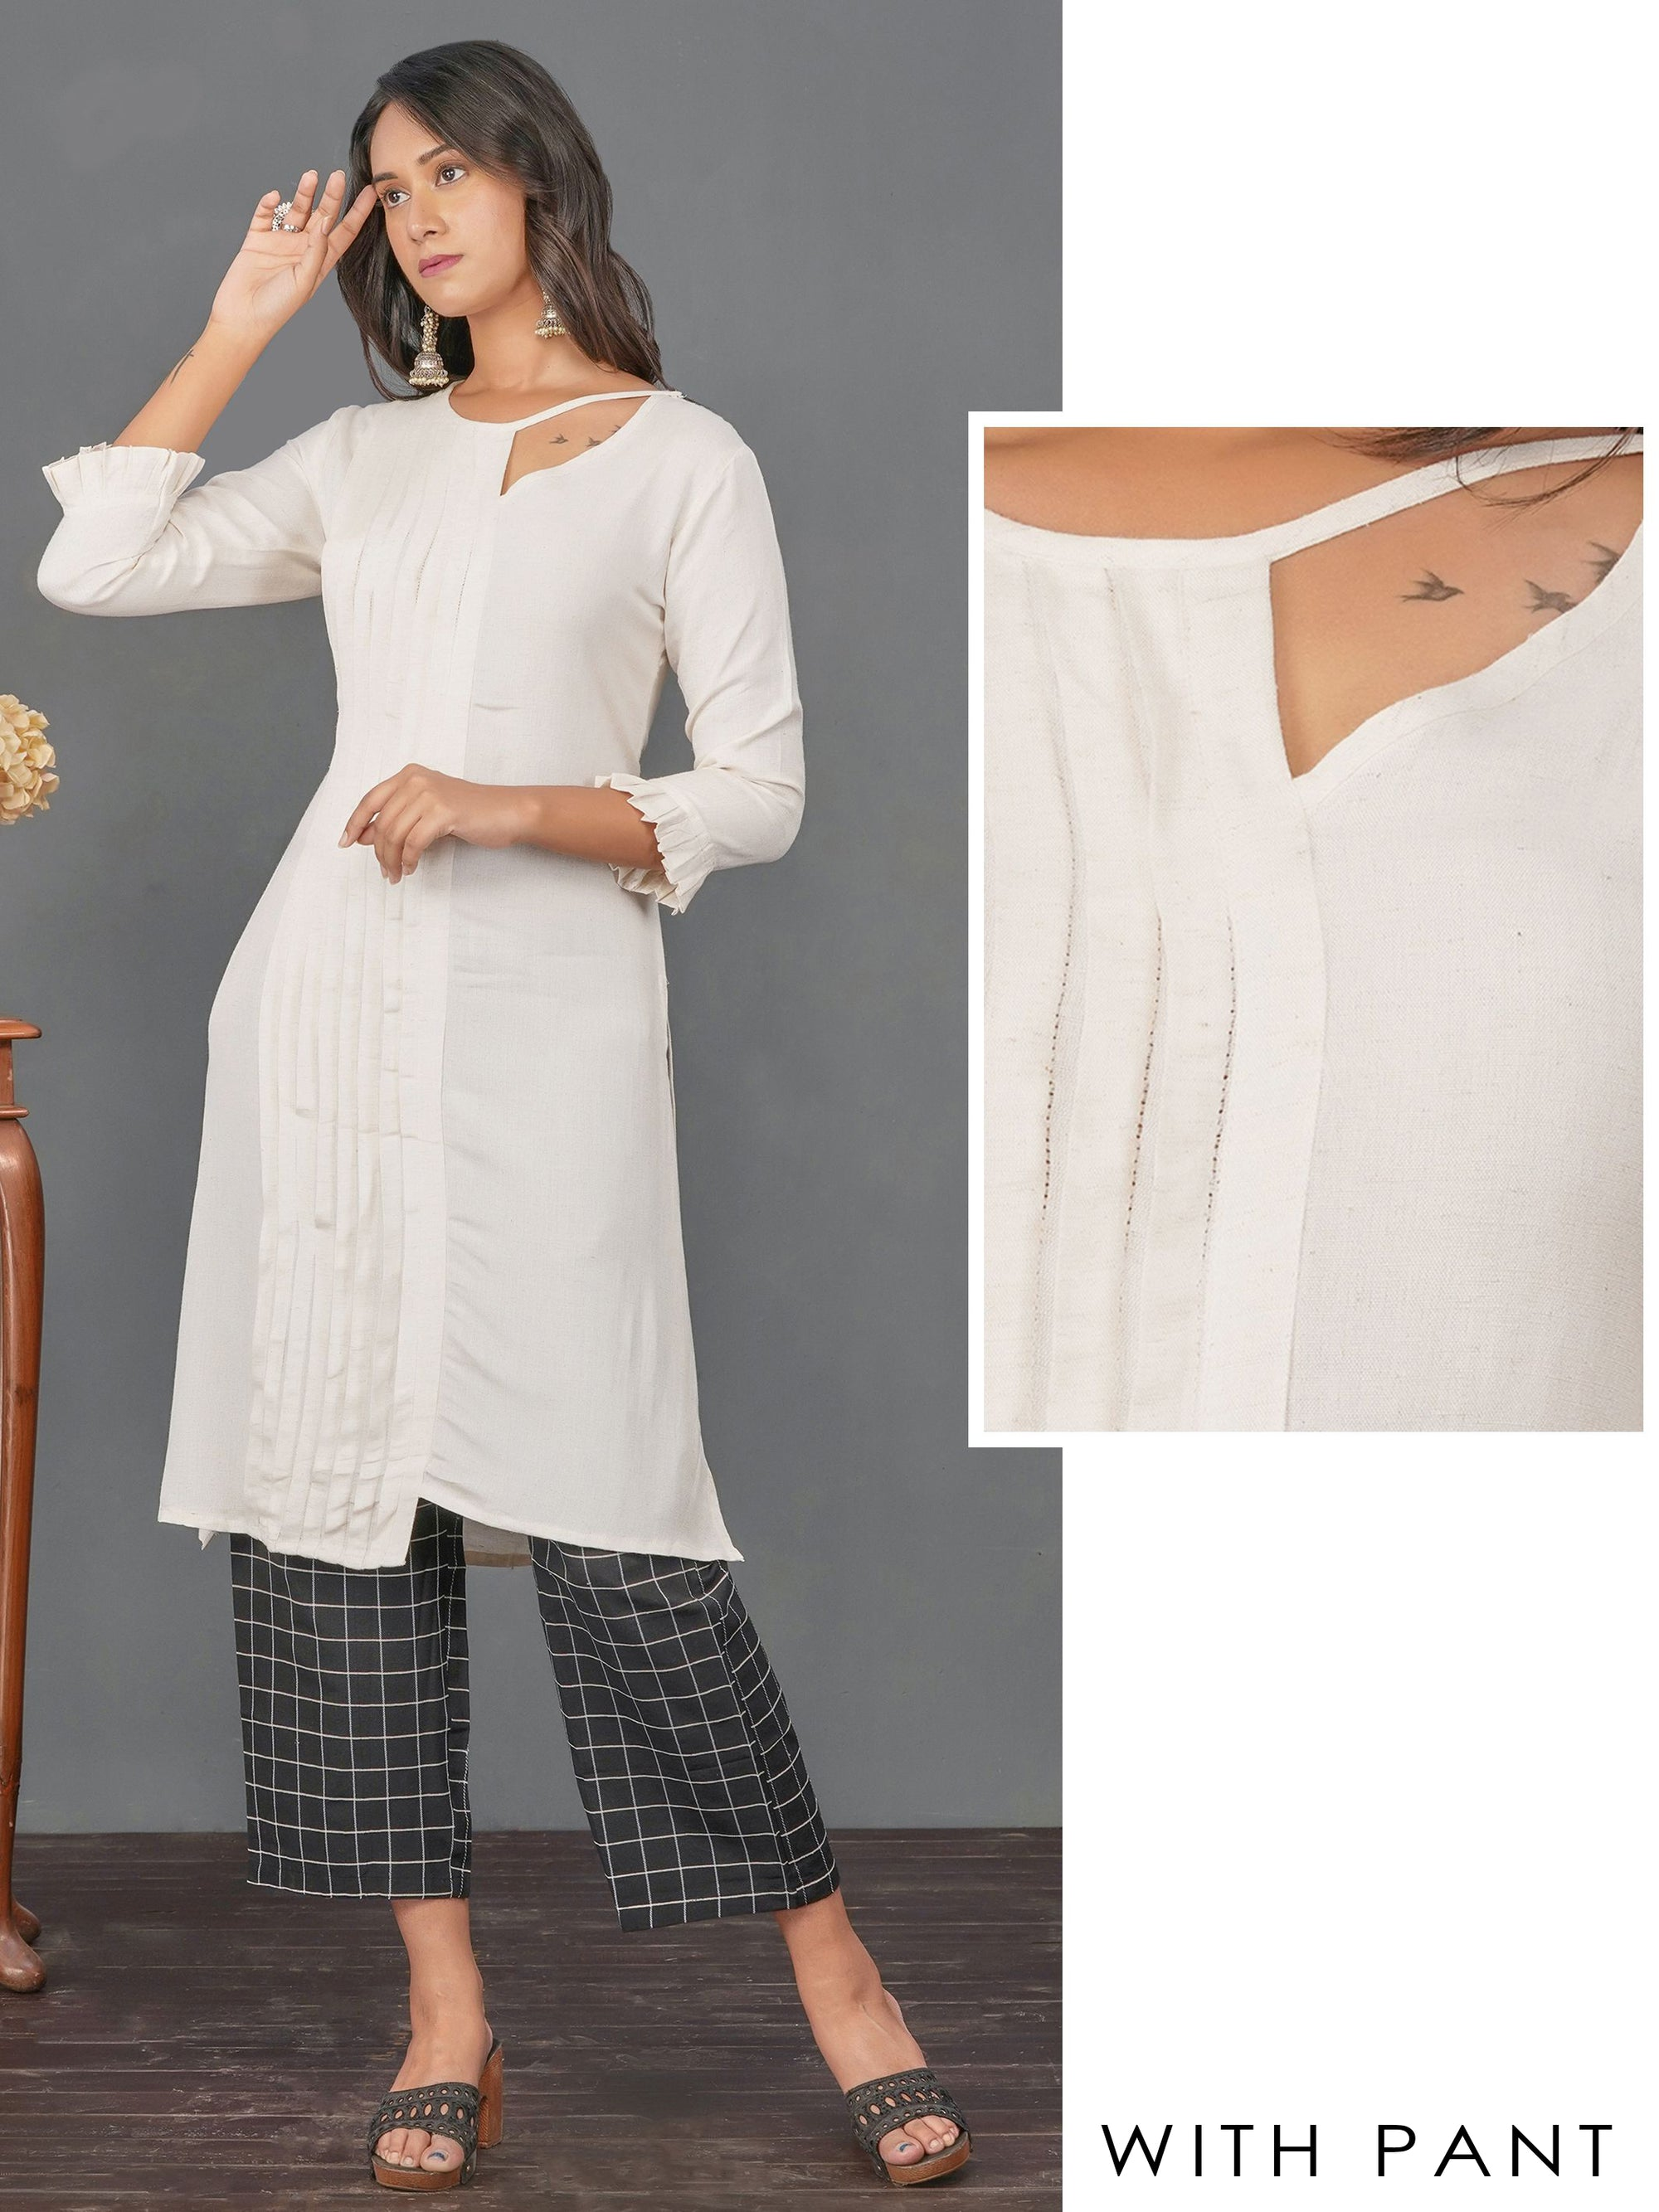 Stylish Cut-Out & Pin Tuck Kurti with Checkered Pant Set – White